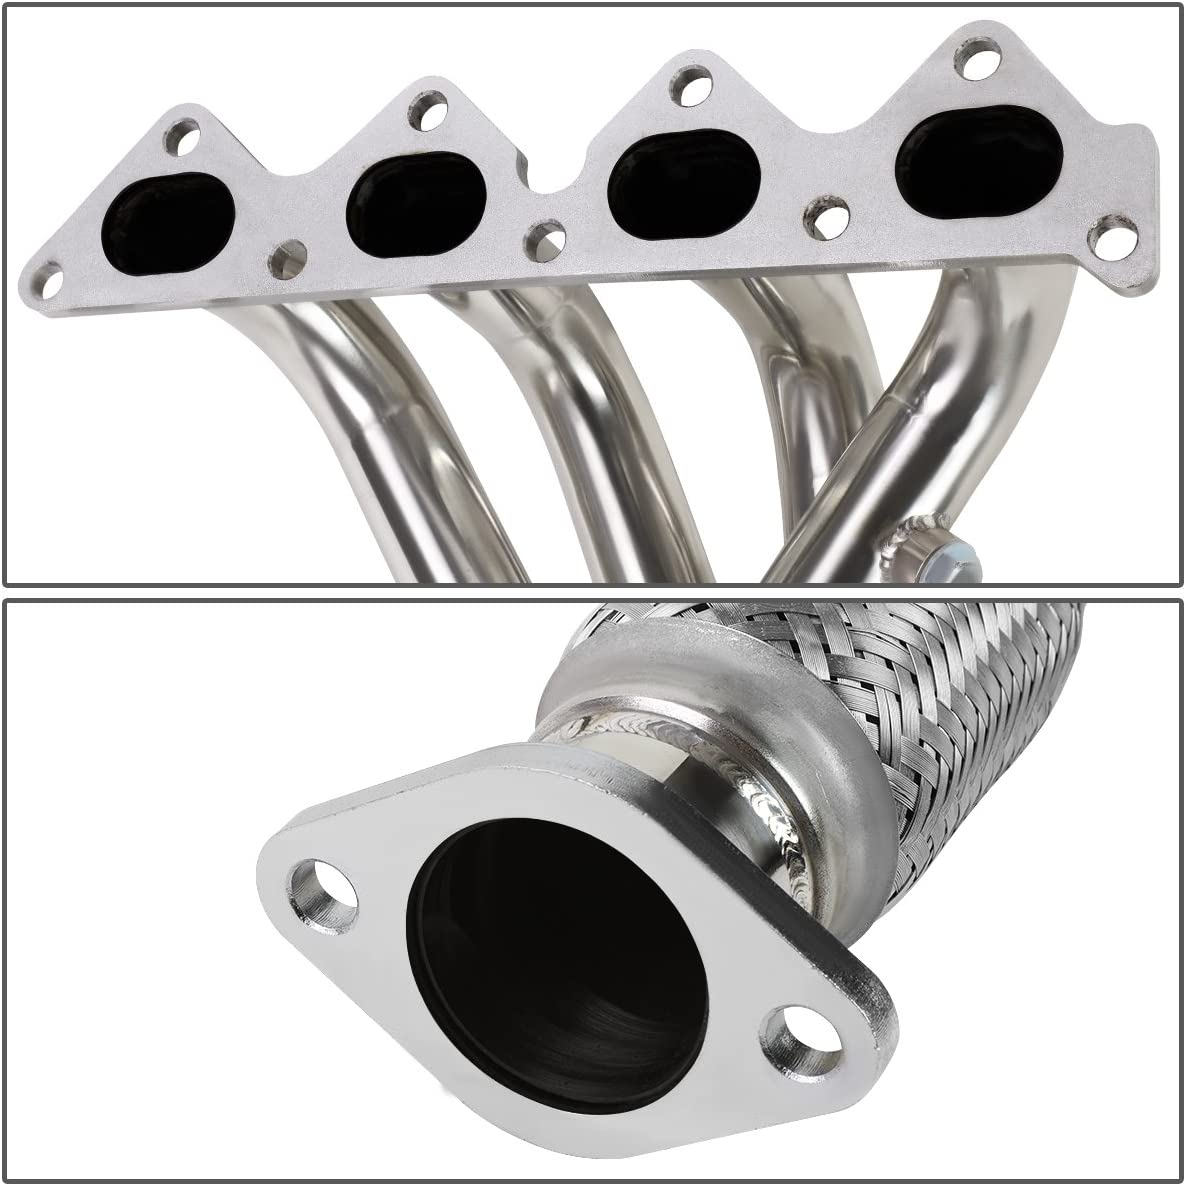 DNA MOTORING HDS-HT02L4 Stainless Steel Exhaust Header Manifold